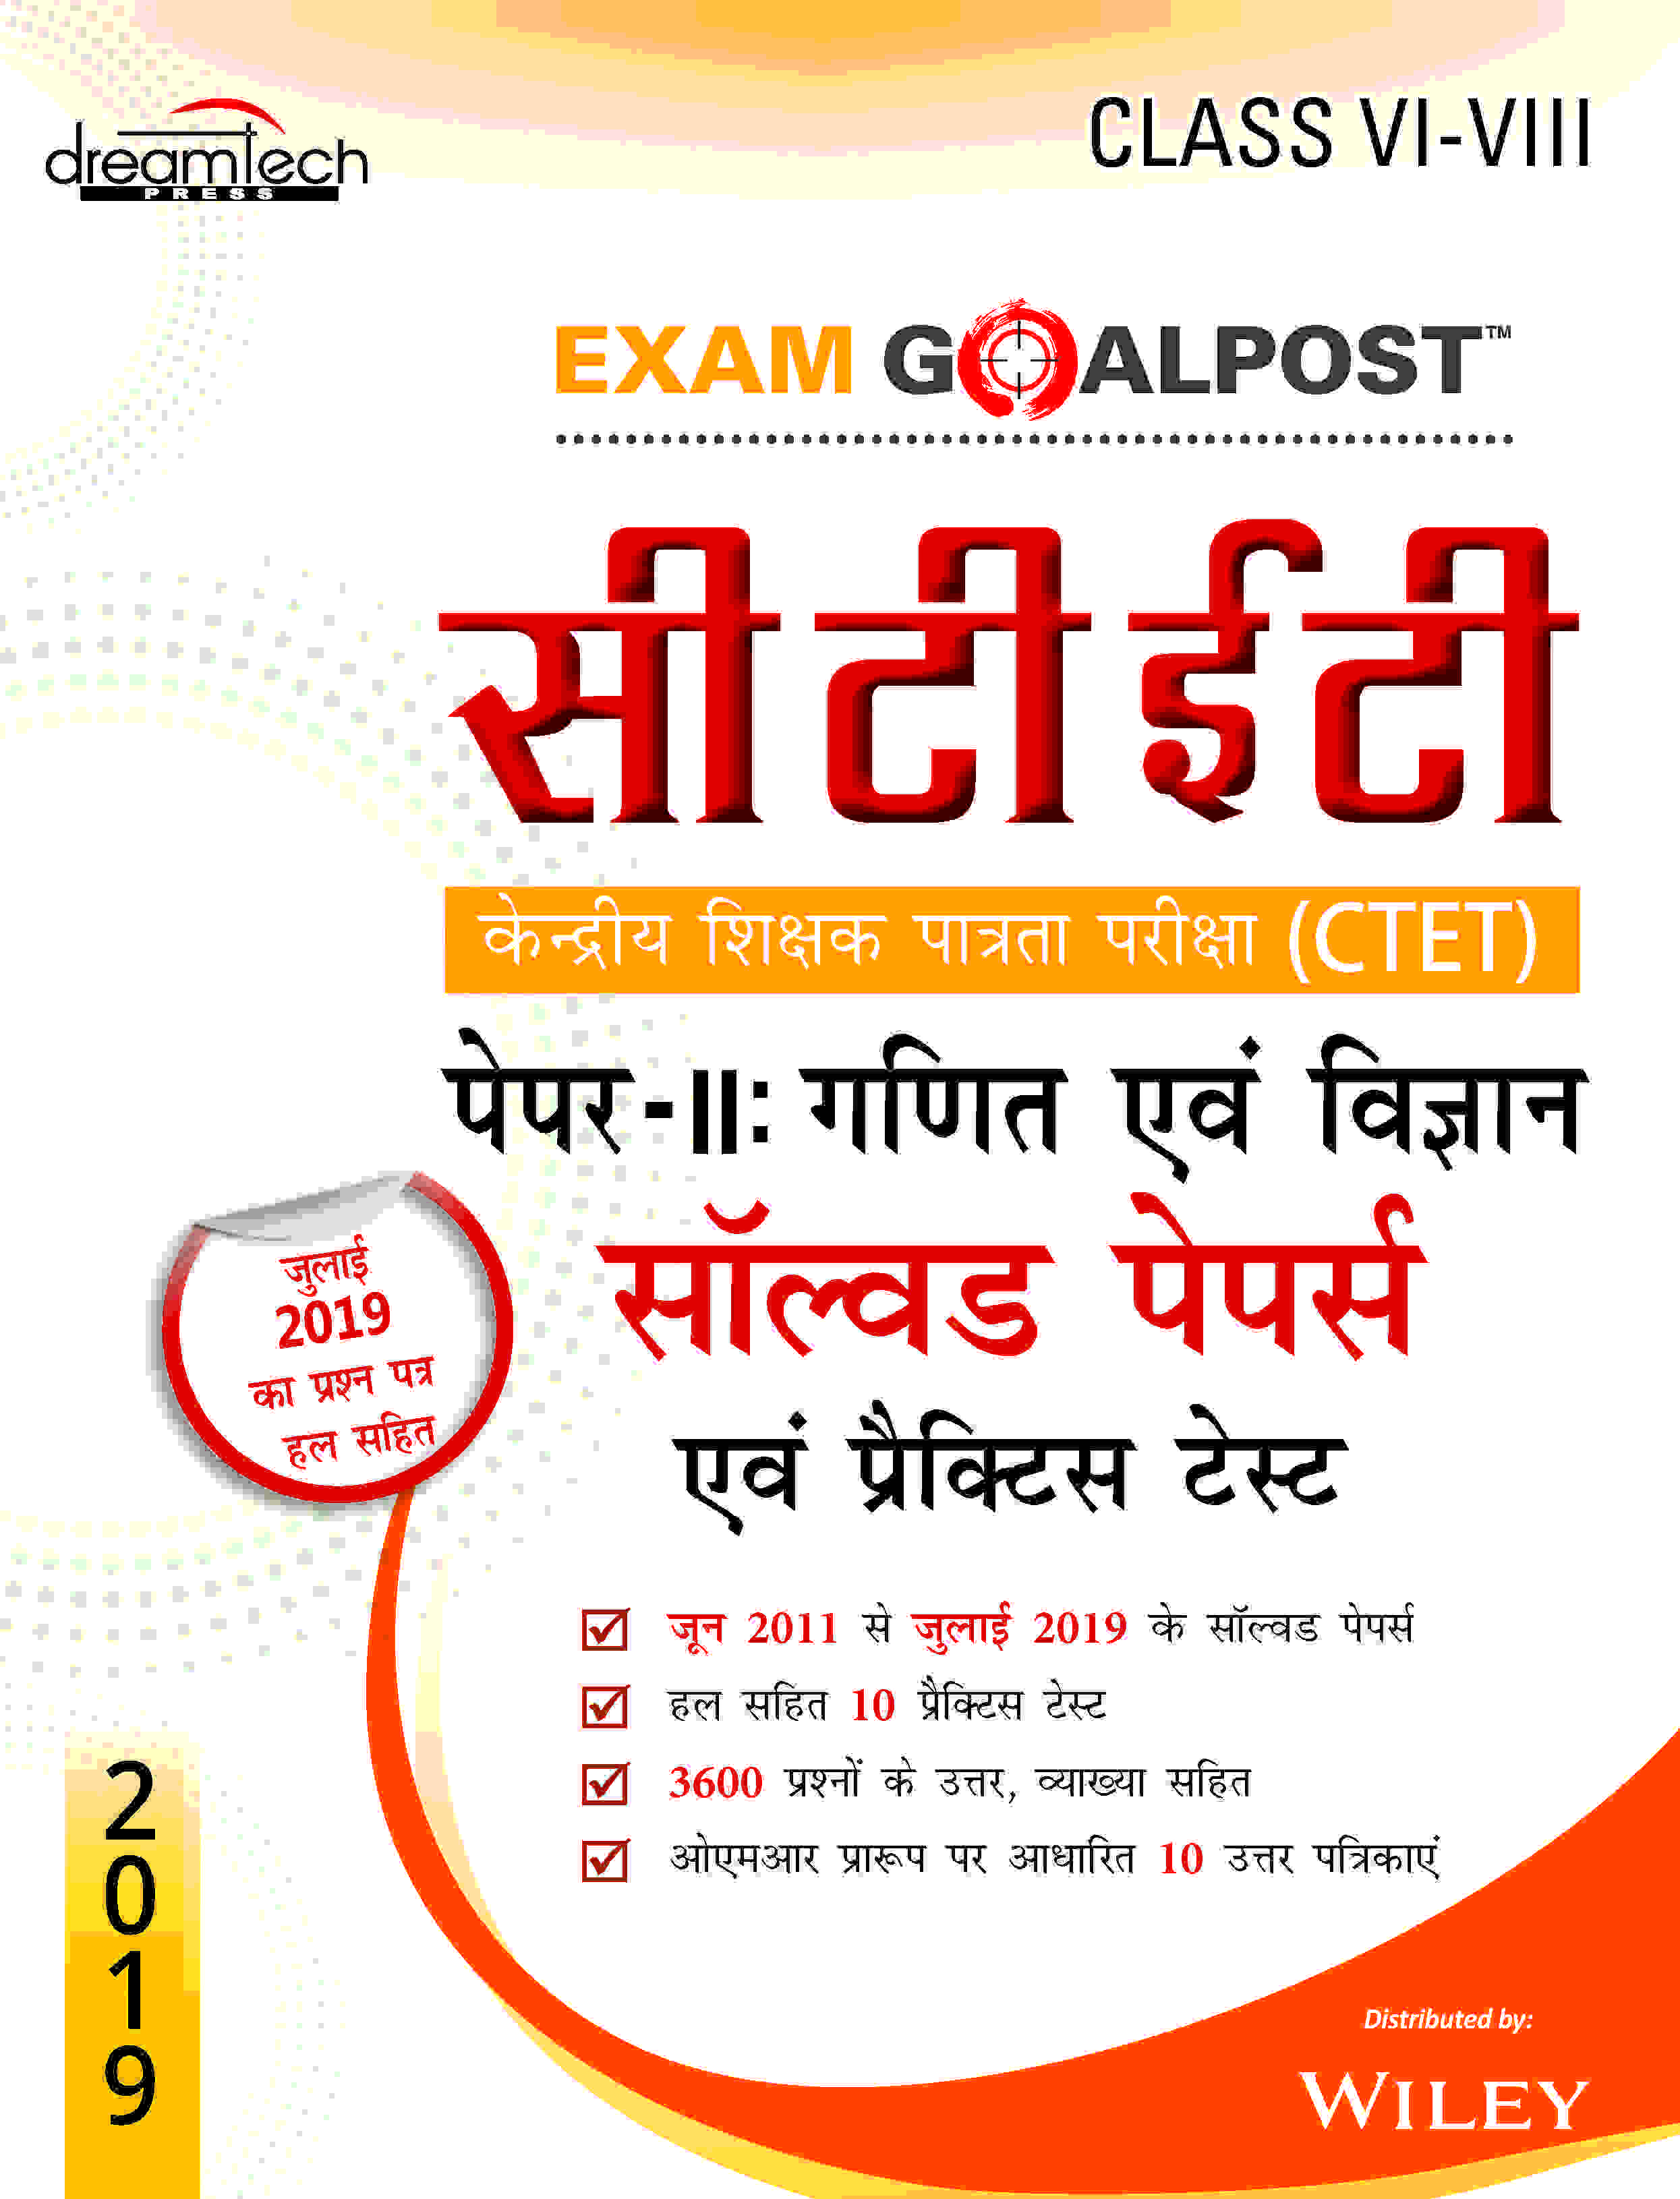 CTET Exam Goalpost, Paper - II, Mathematics and Science, Solved Papers & Practice Tests, Class VI - VIII, 2019, in Hindi